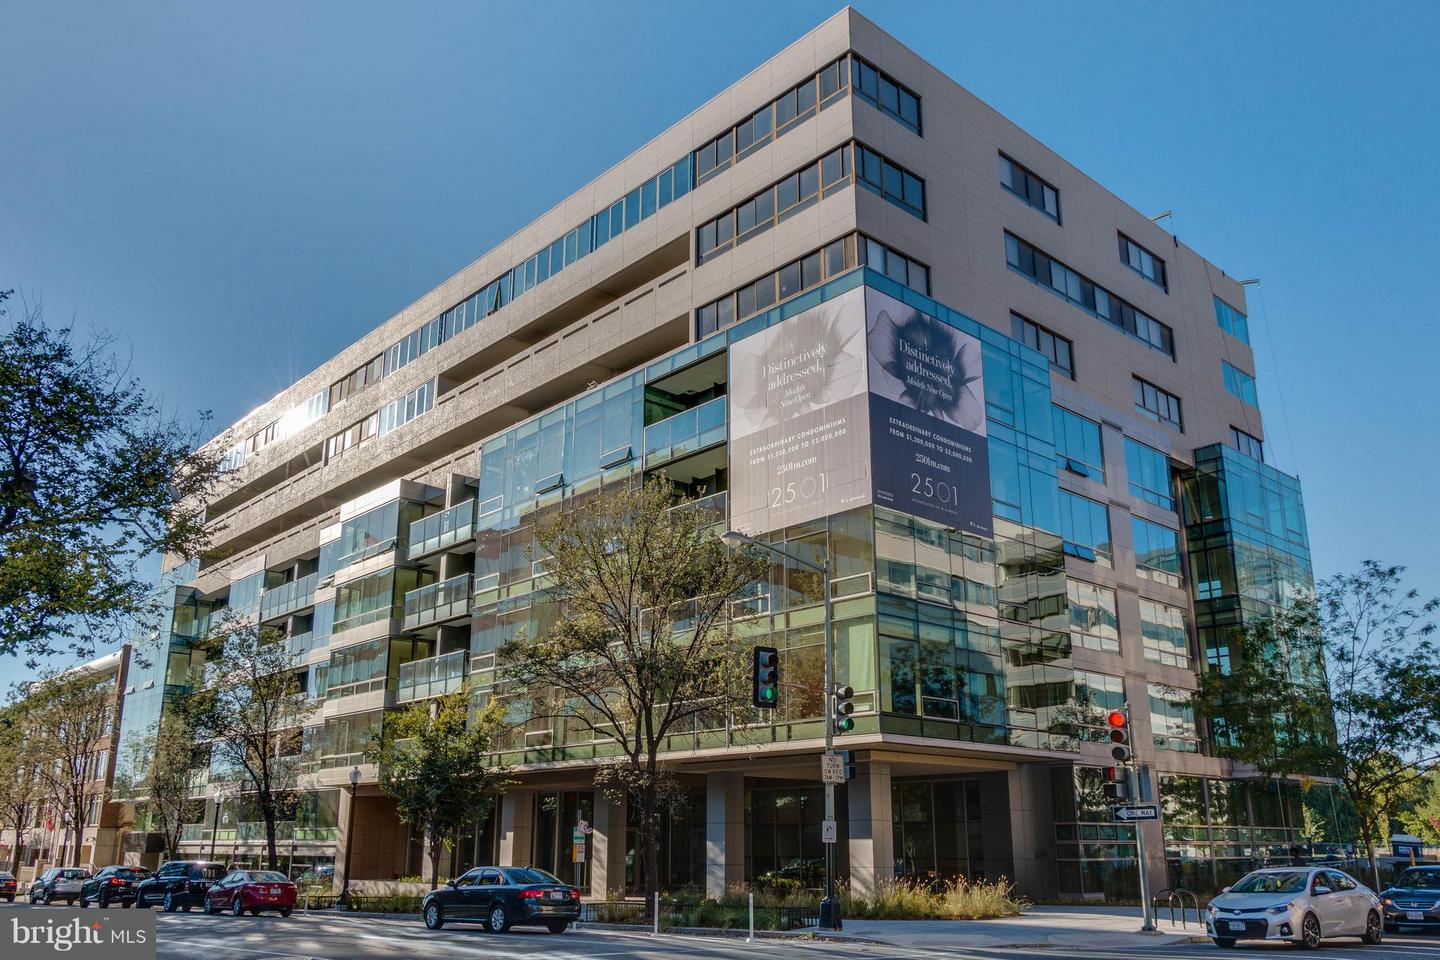 Property for Sale at 2501 M St NW #303 2501 M St NW #303 Washington, District Of Columbia 20037 United States